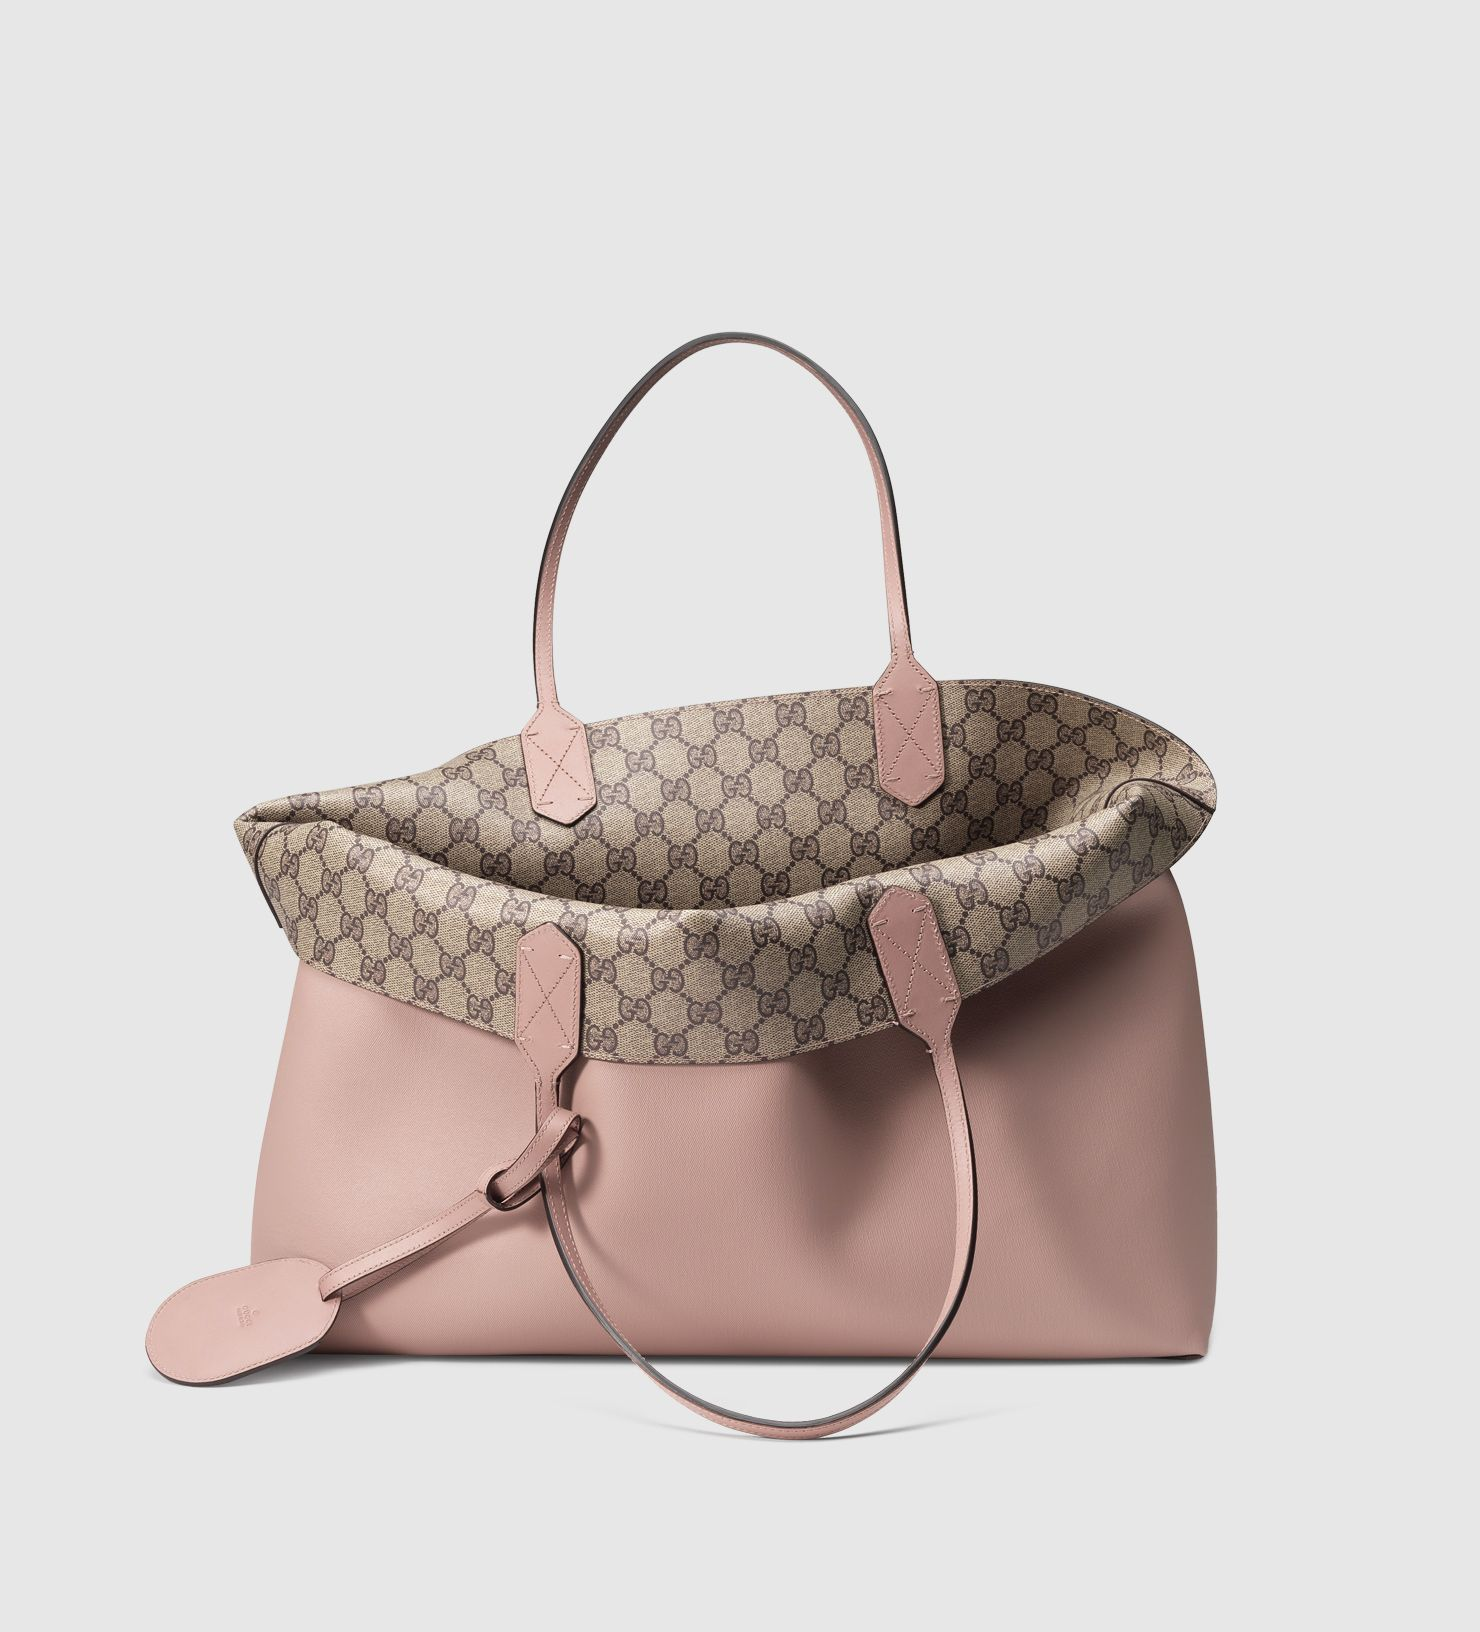 fbaadd37c930 Gucci Reversible Tote - Designer Authentication Services for Handbags,  Shoes, Fine Jewelry   Accessories   Luxury Designer Authentication